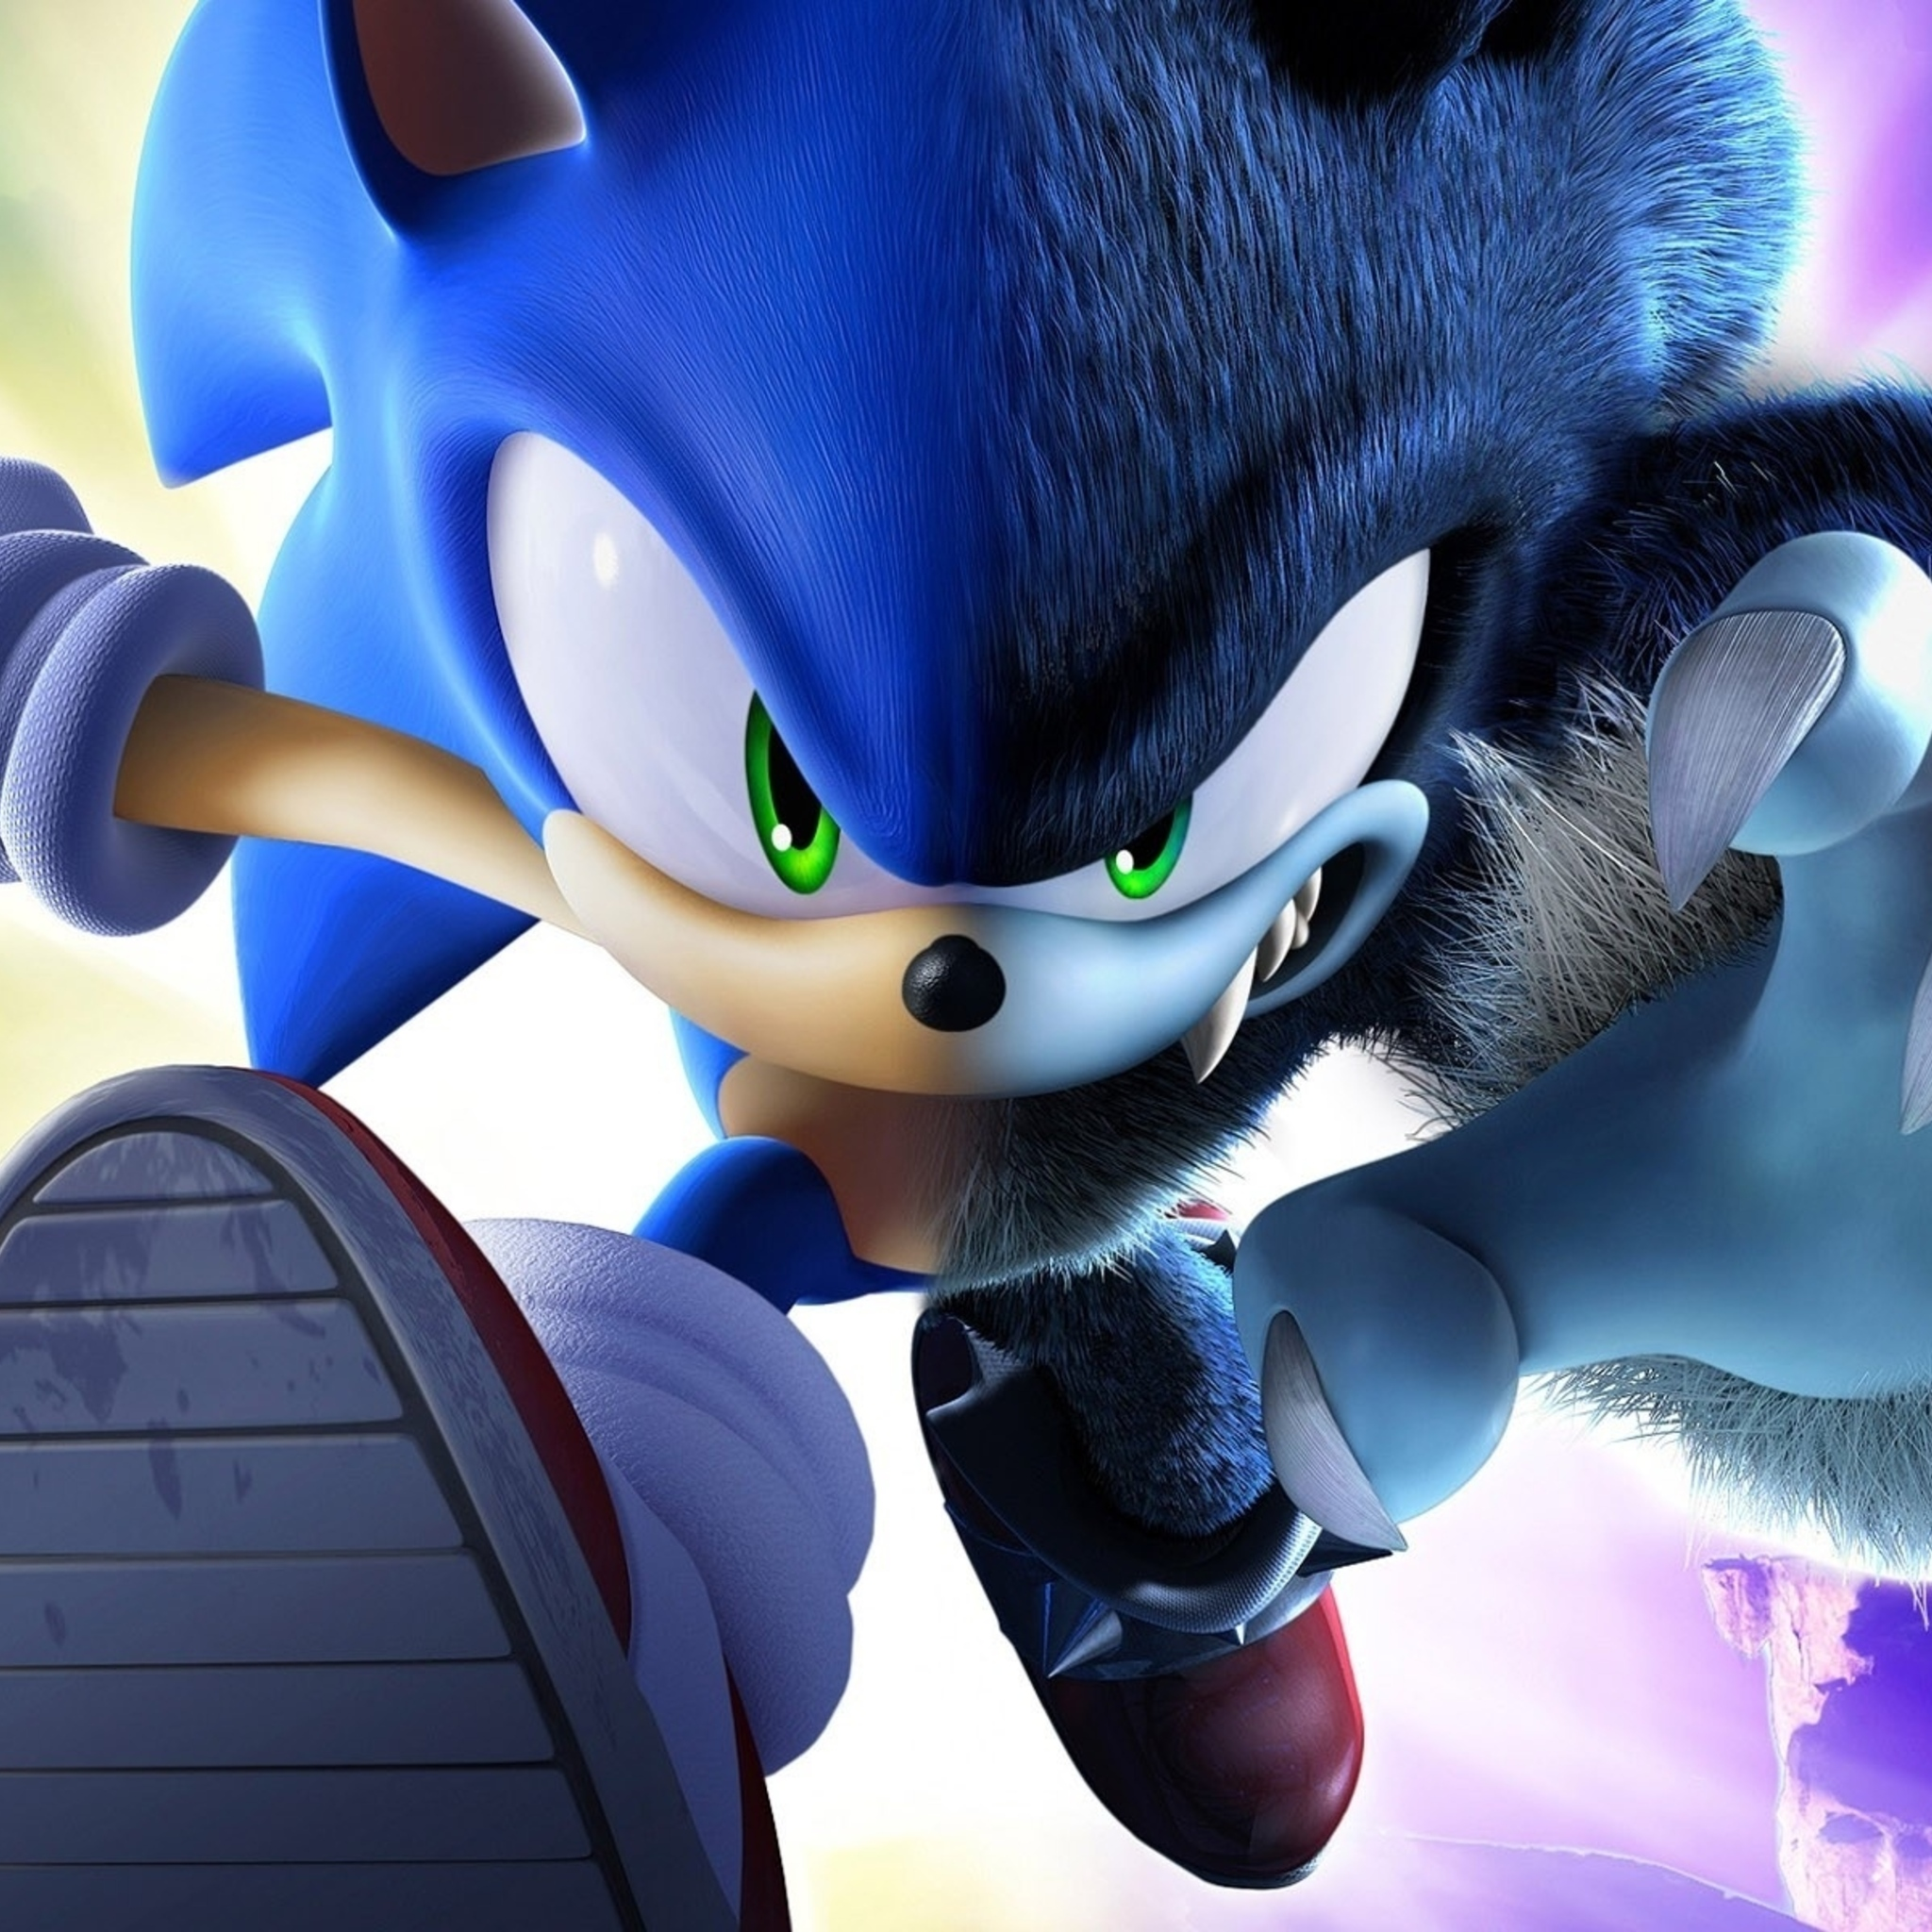 2048x2048 Sonic The Hedgehog Ipad Air Hd 4k Wallpapers Images Backgrounds Photos And Pictures